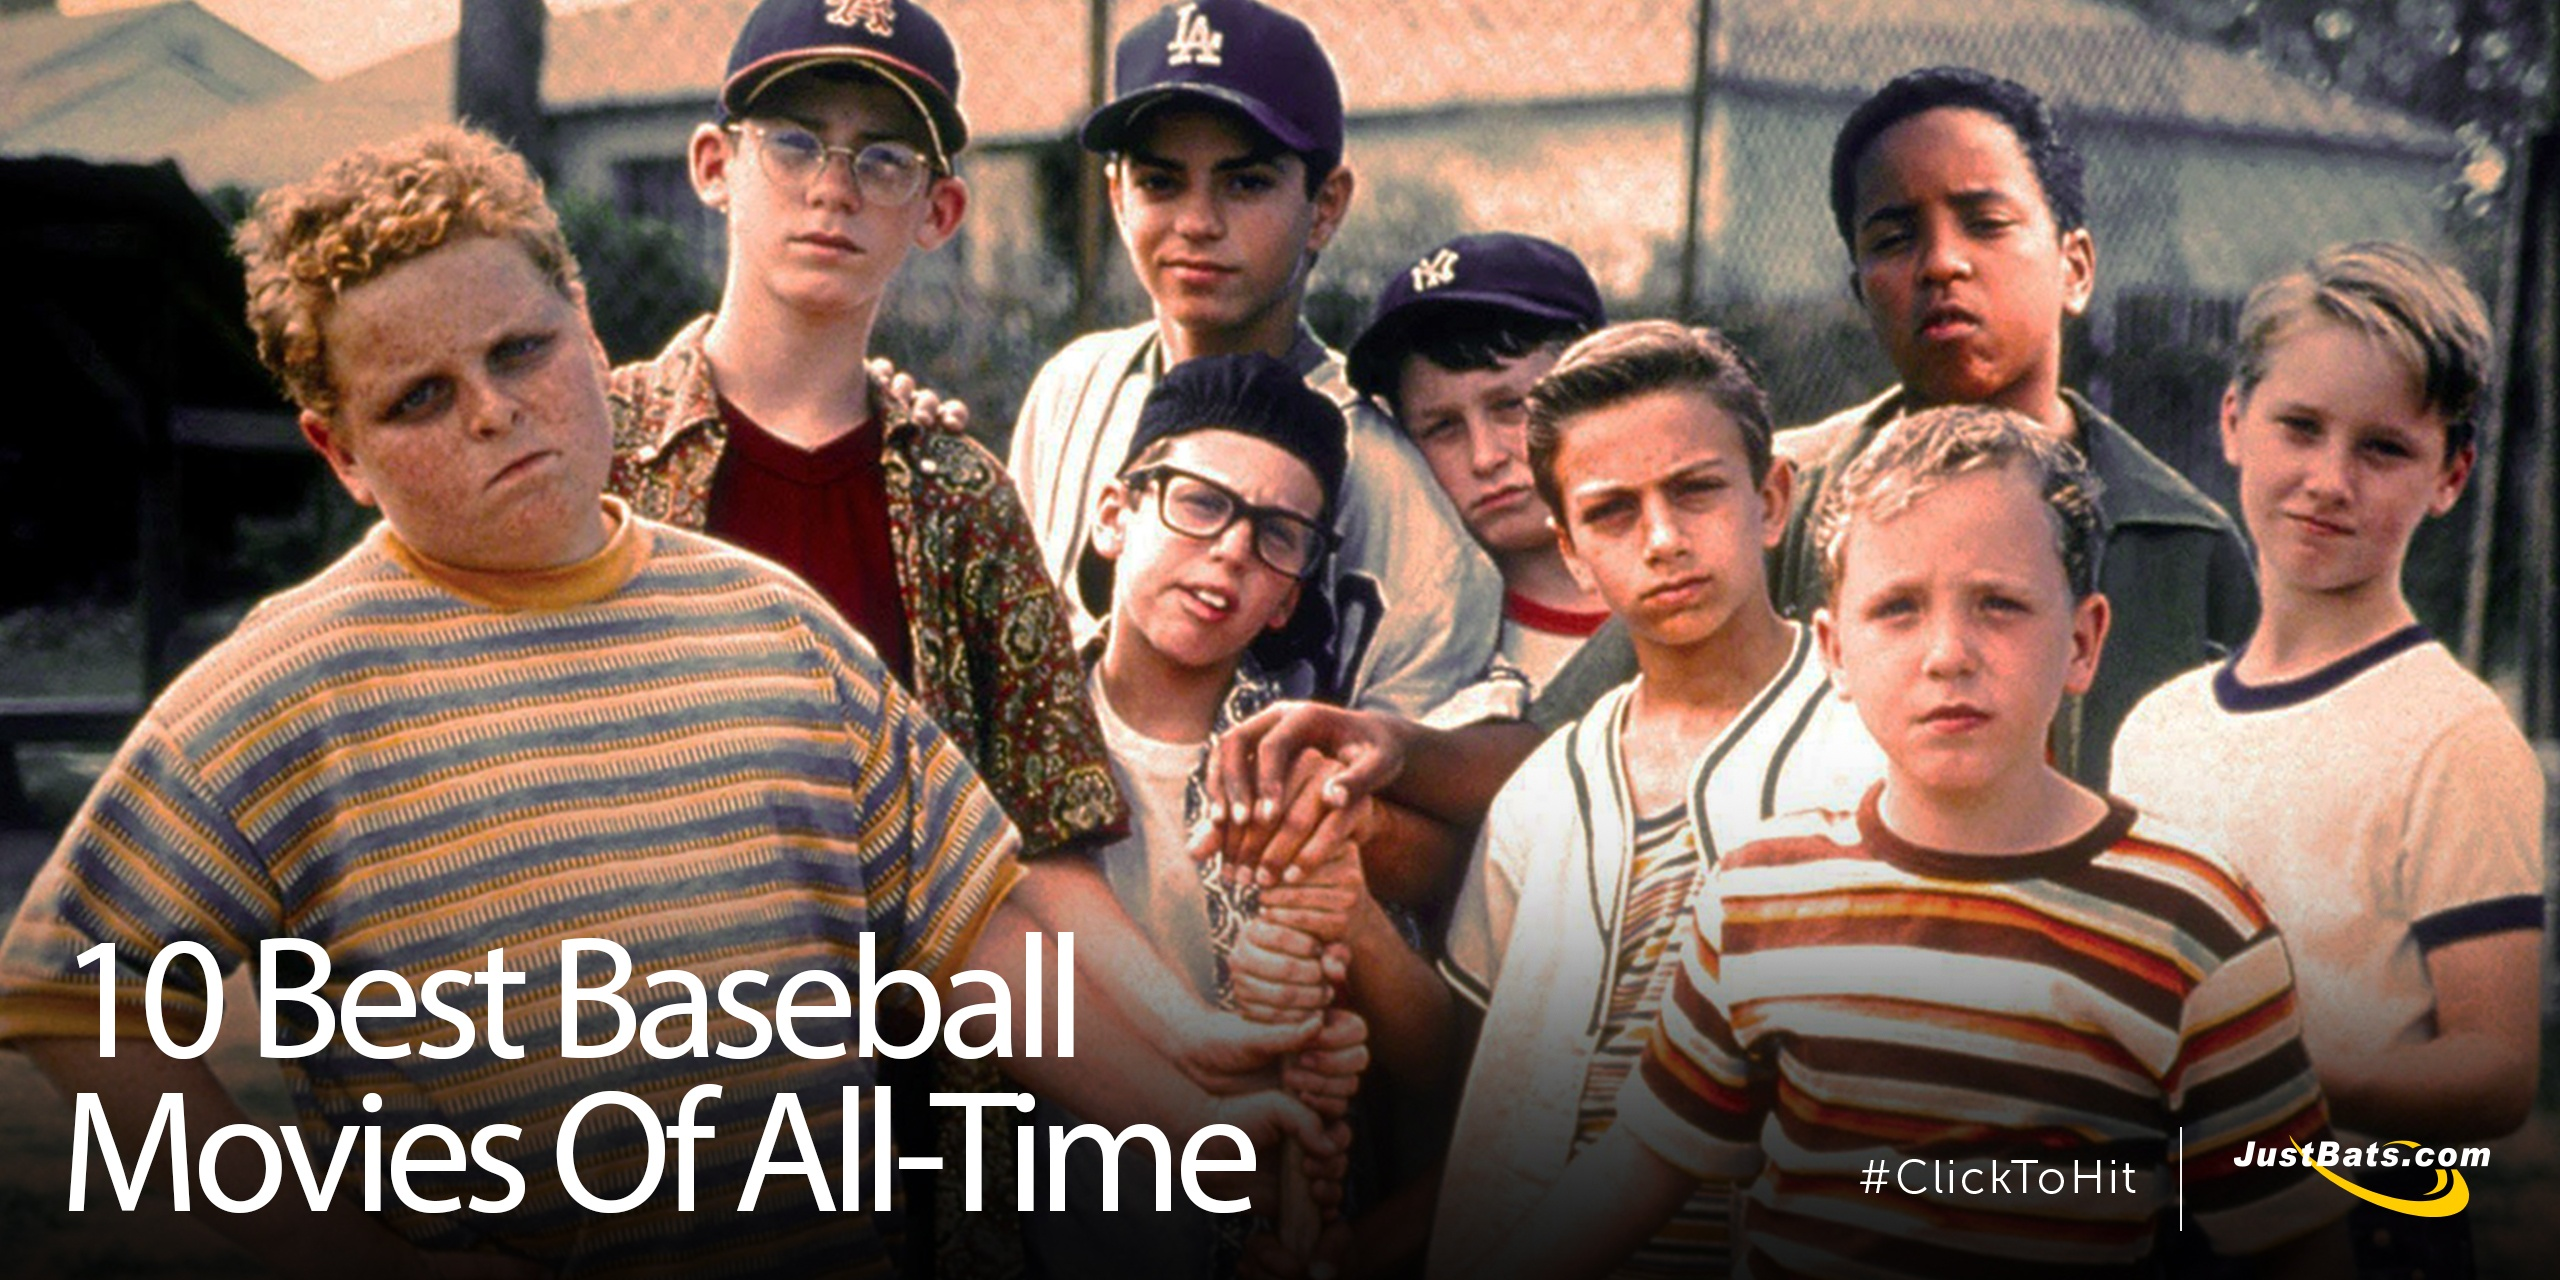 10 Best Baseball Movies - Blog.jpg